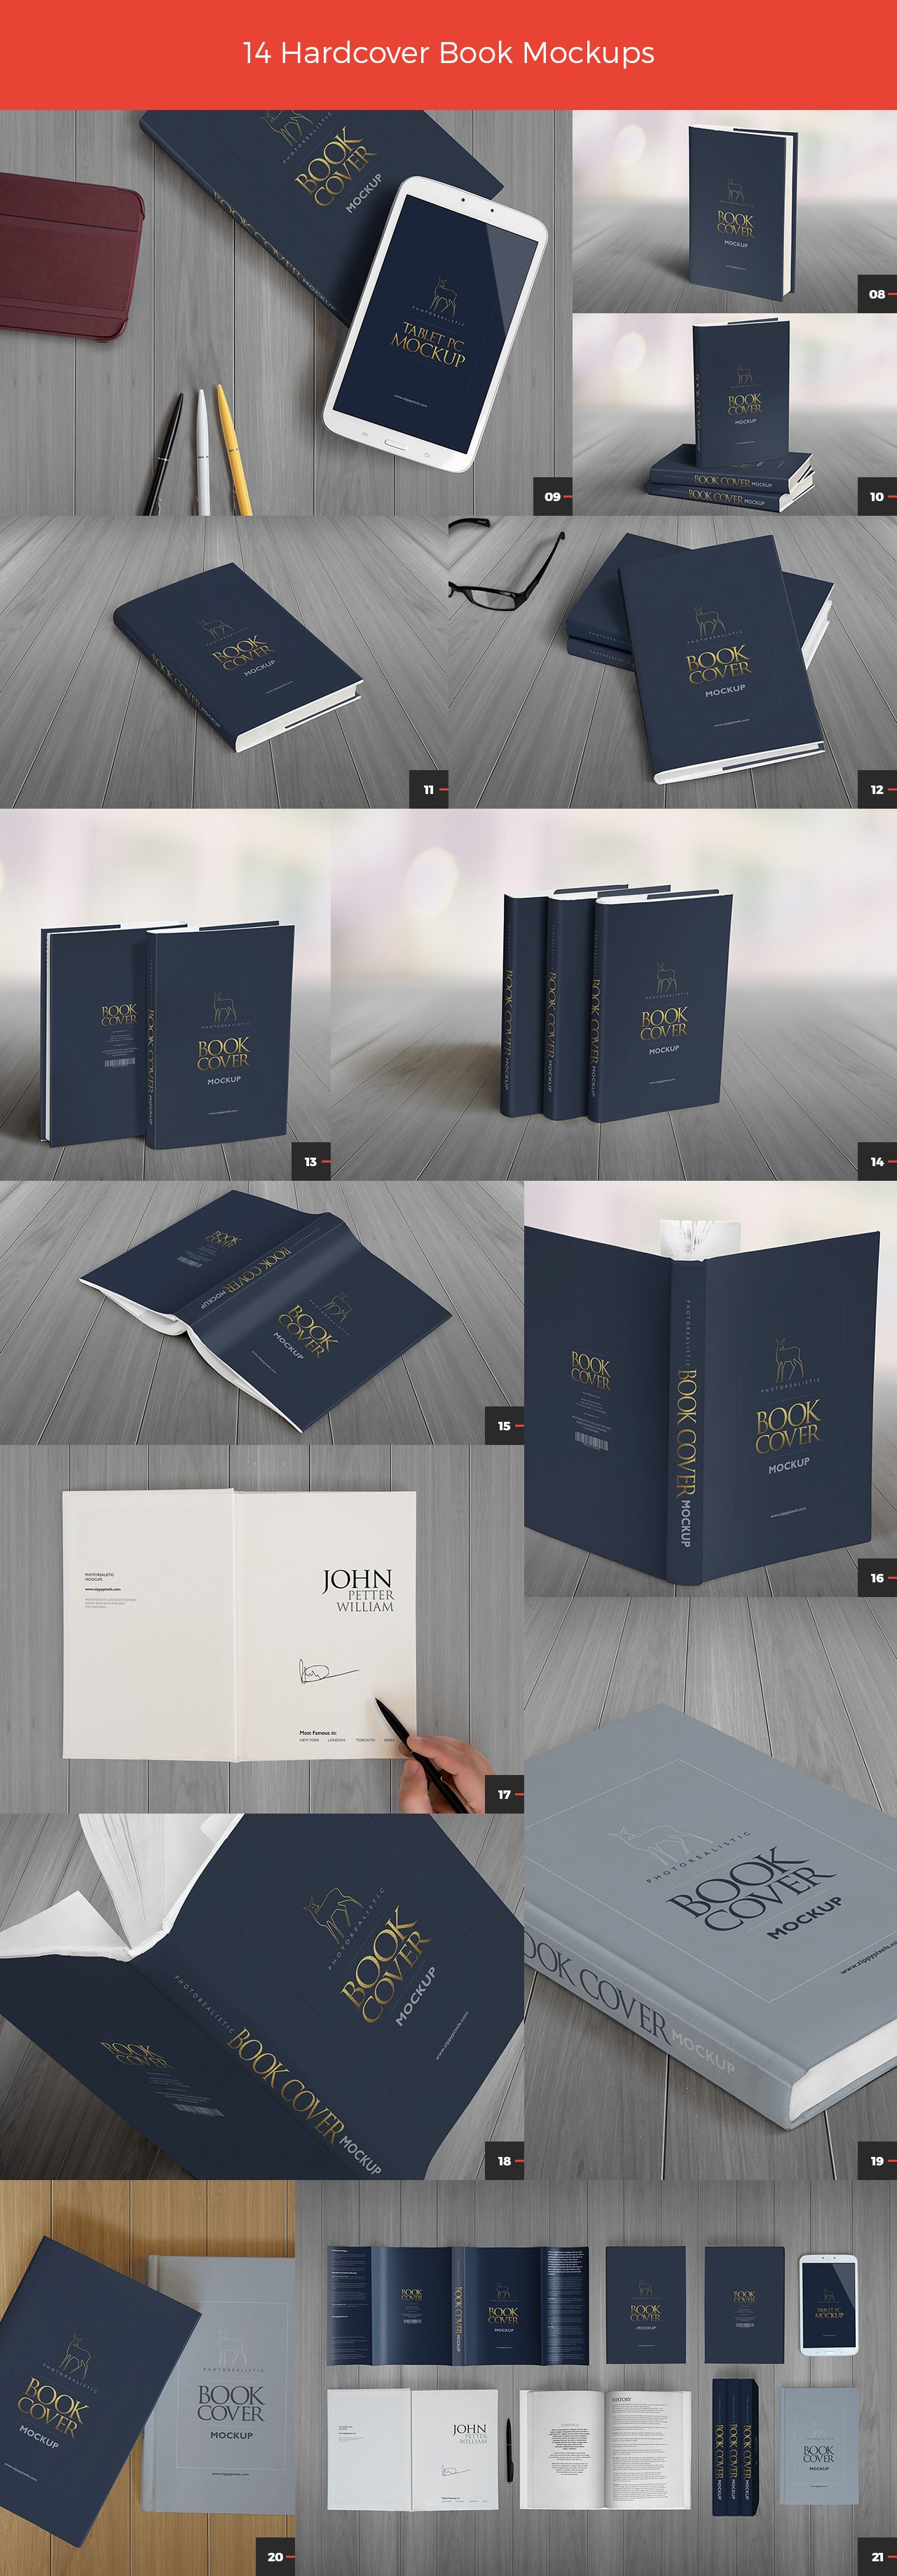 02-hard-cover-book-mockup